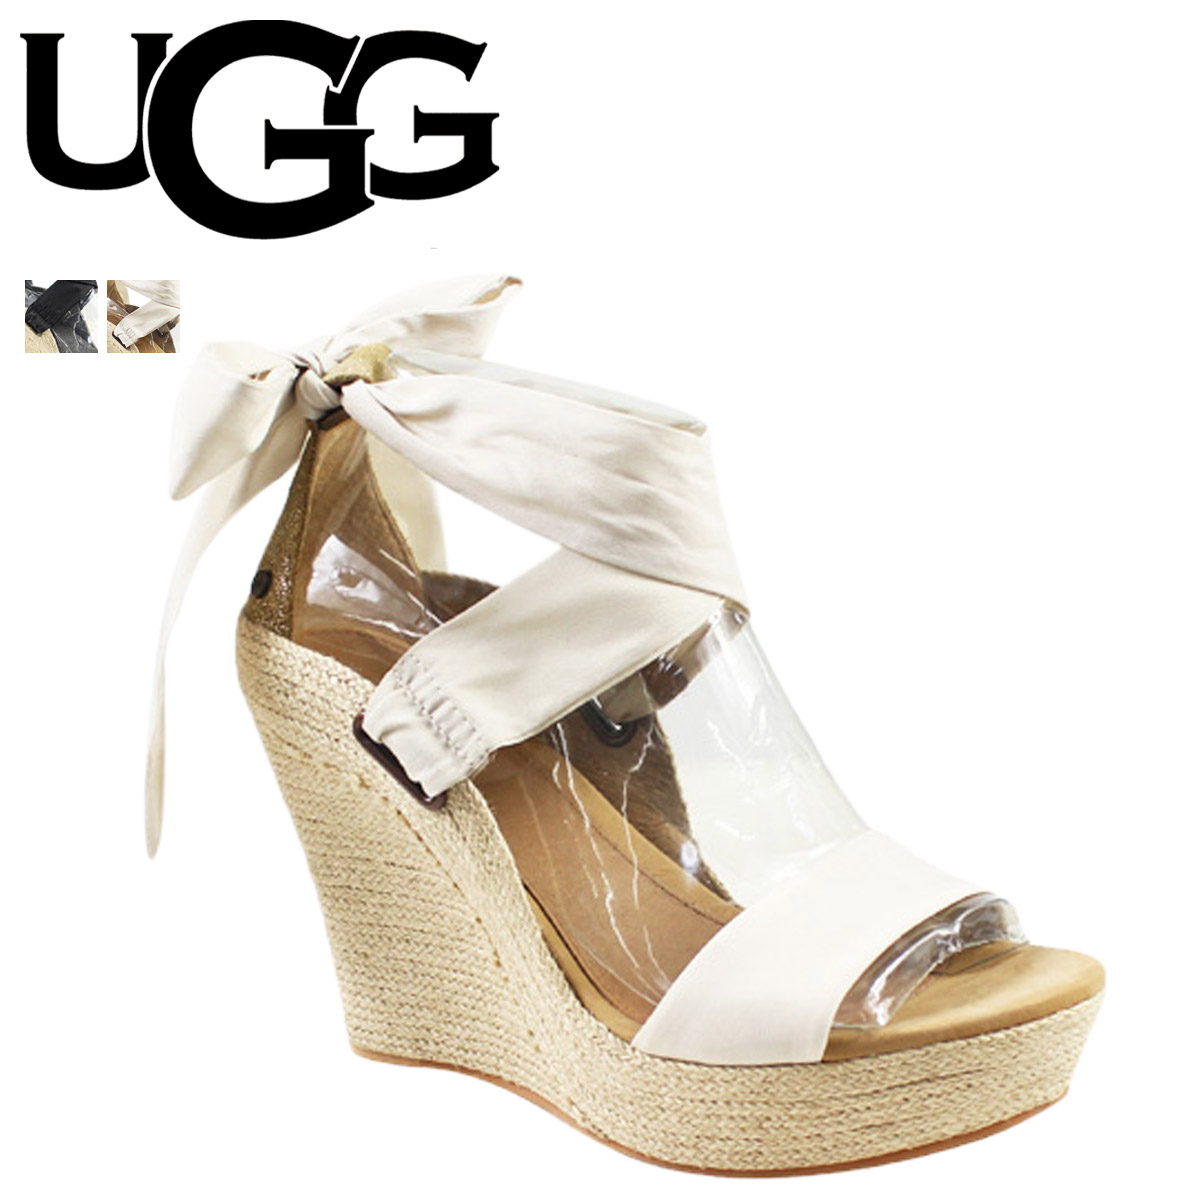 Sneak Online Shop Ugg Ugg Women S Jules Sandals Wedge